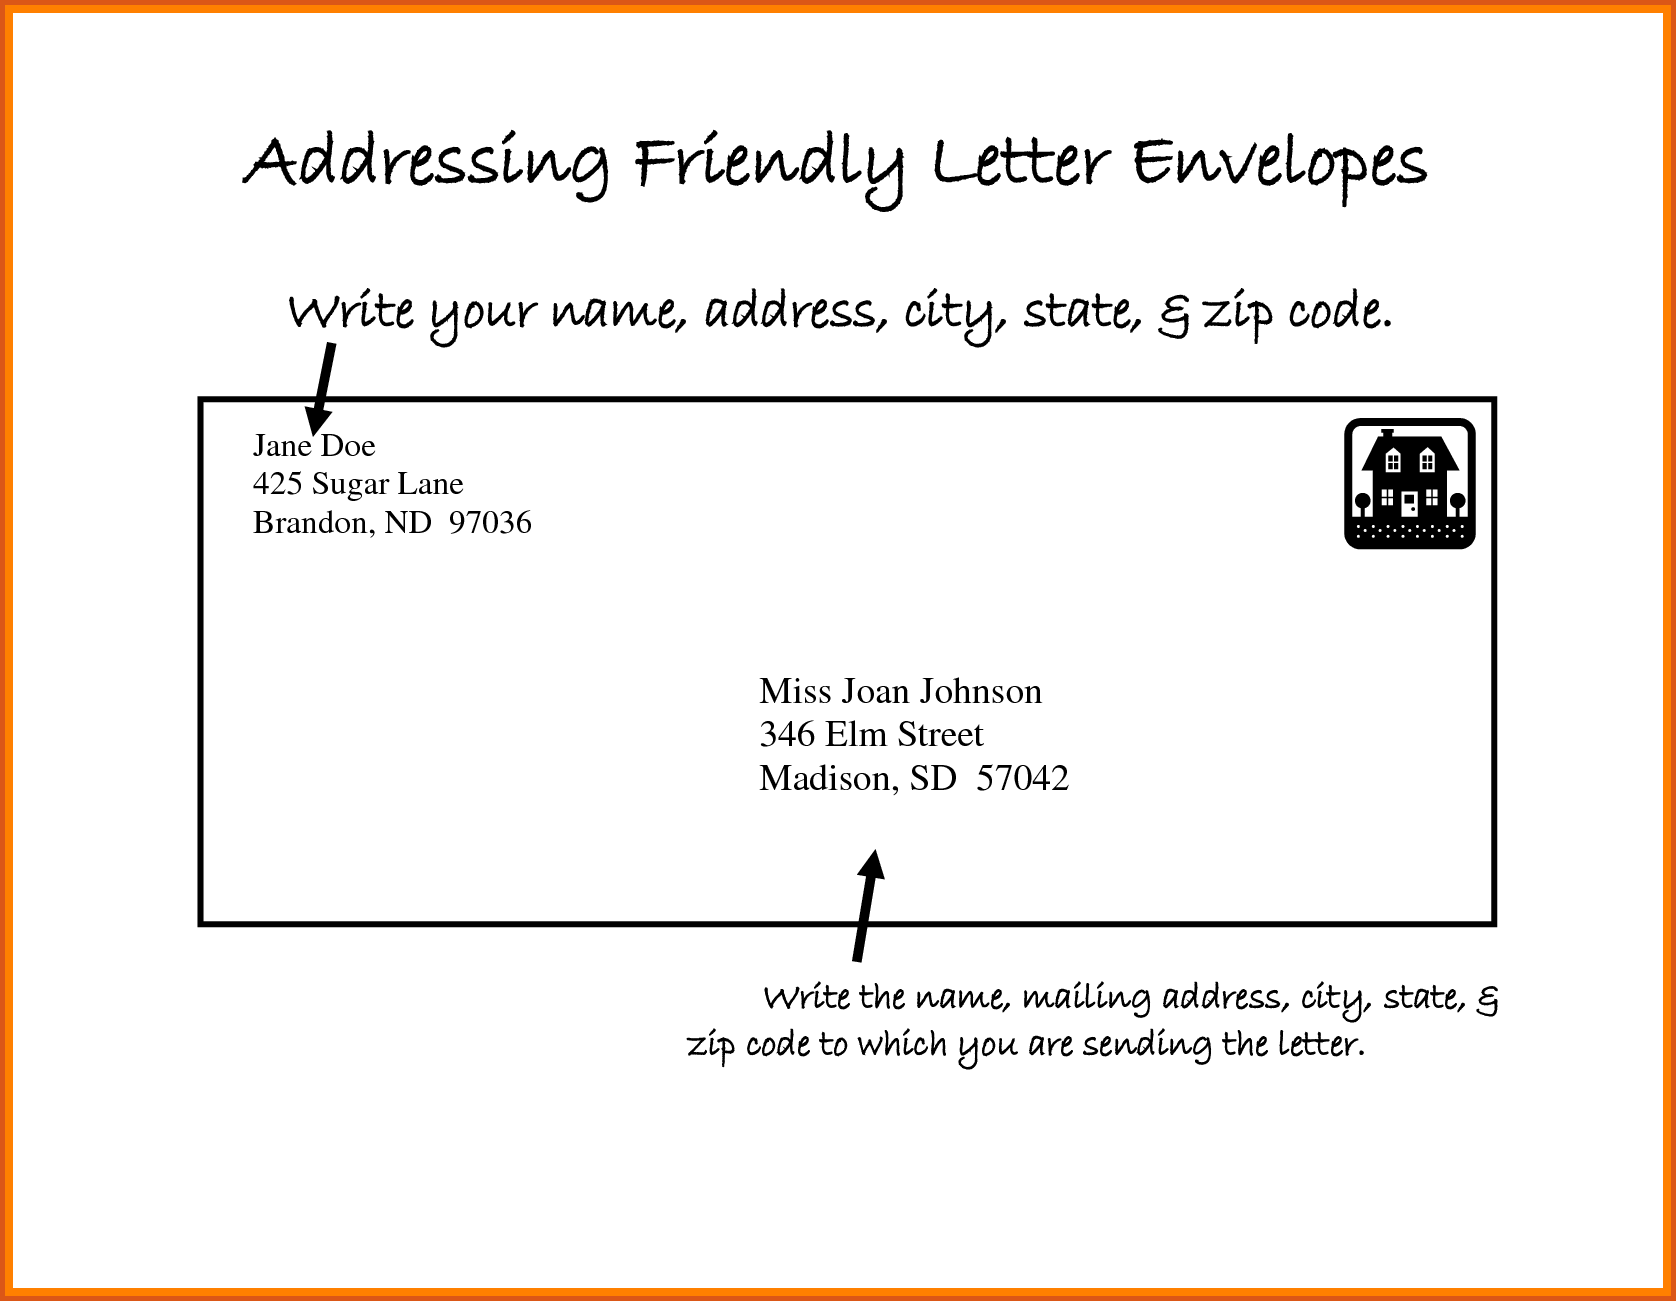 Envelope Format For Mailing 1 – invest wight